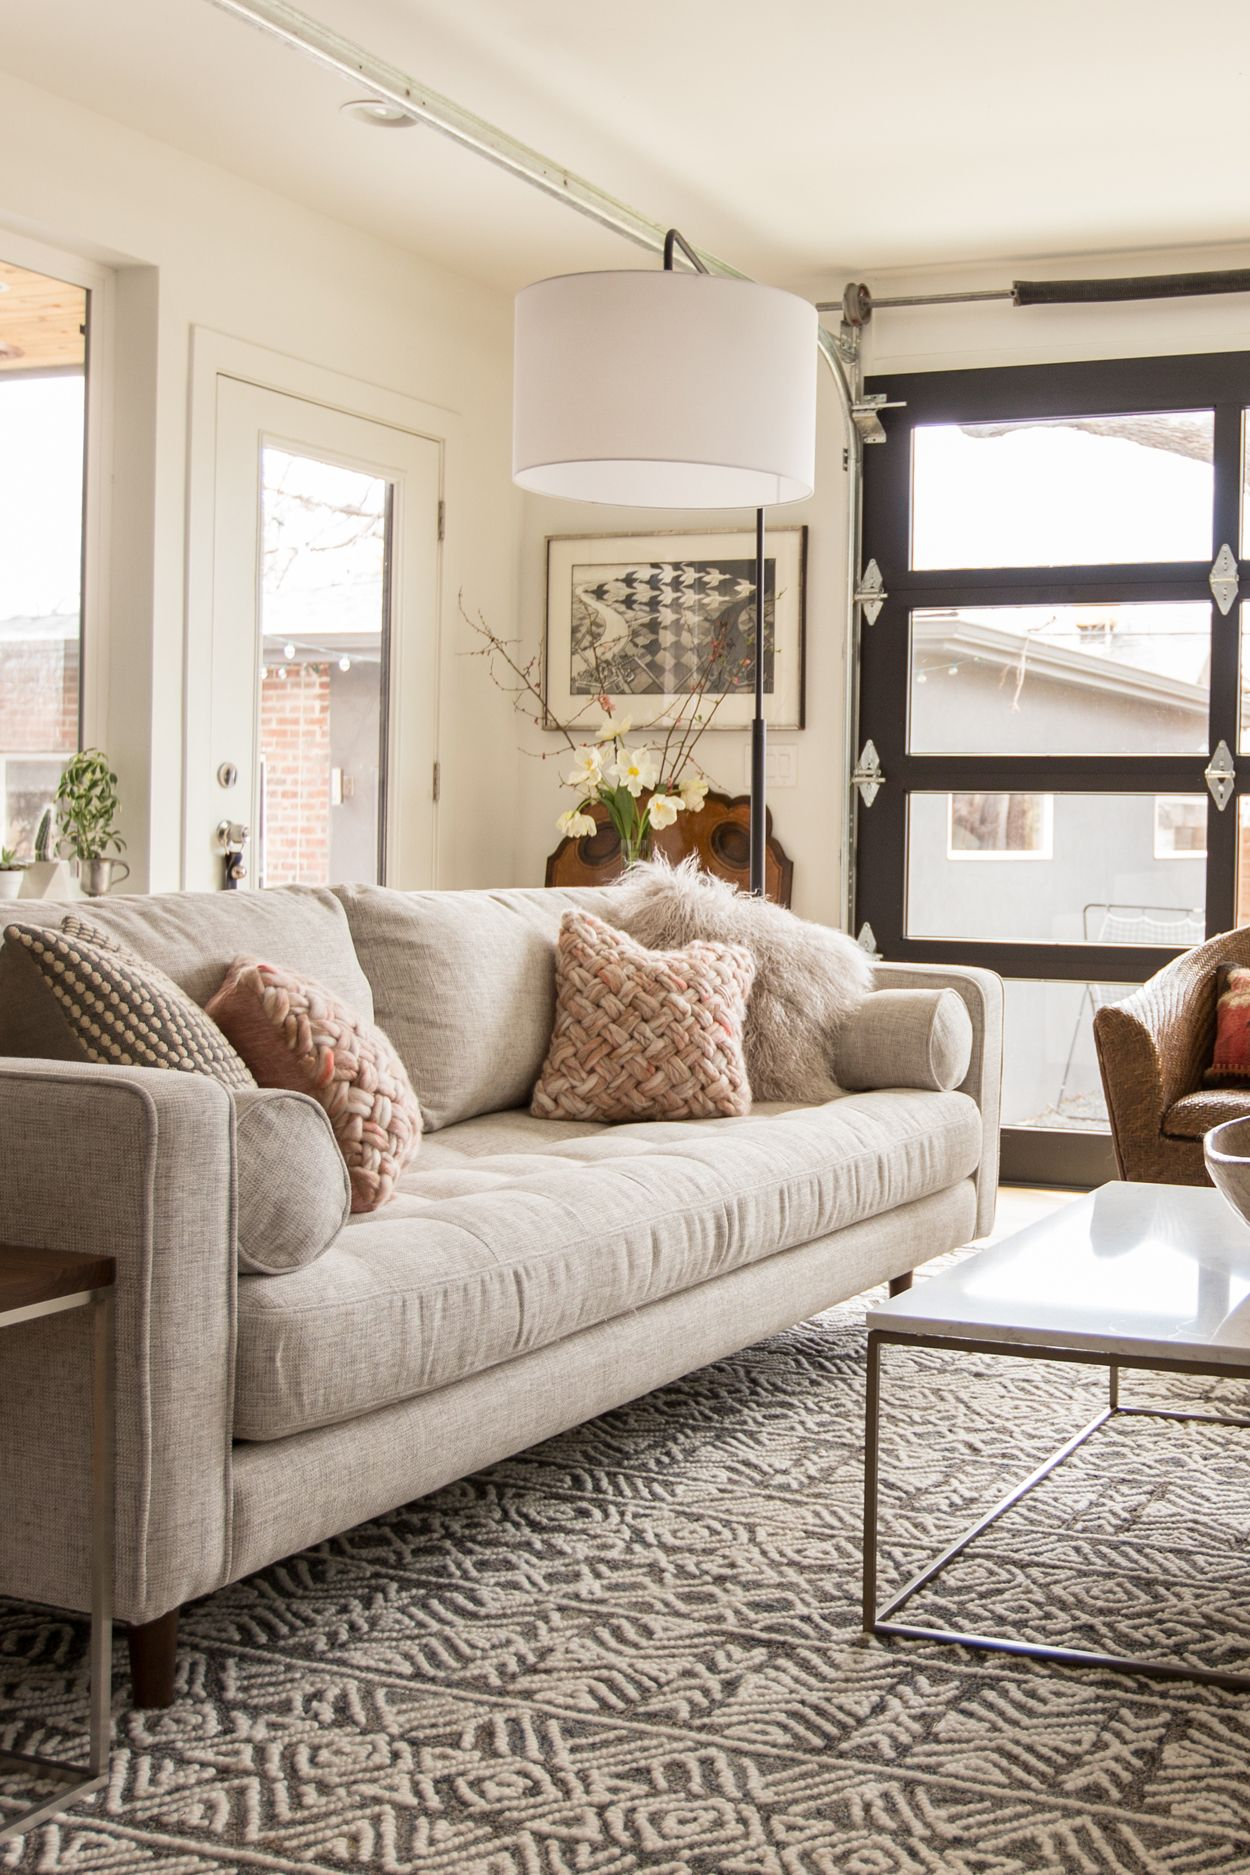 The Other Reason That I Love The New Sven Sofa Is That The Slightly Higher Arms Create A Rounded F Beige Sofa Living Room Living Room Sofa Living Room Designs